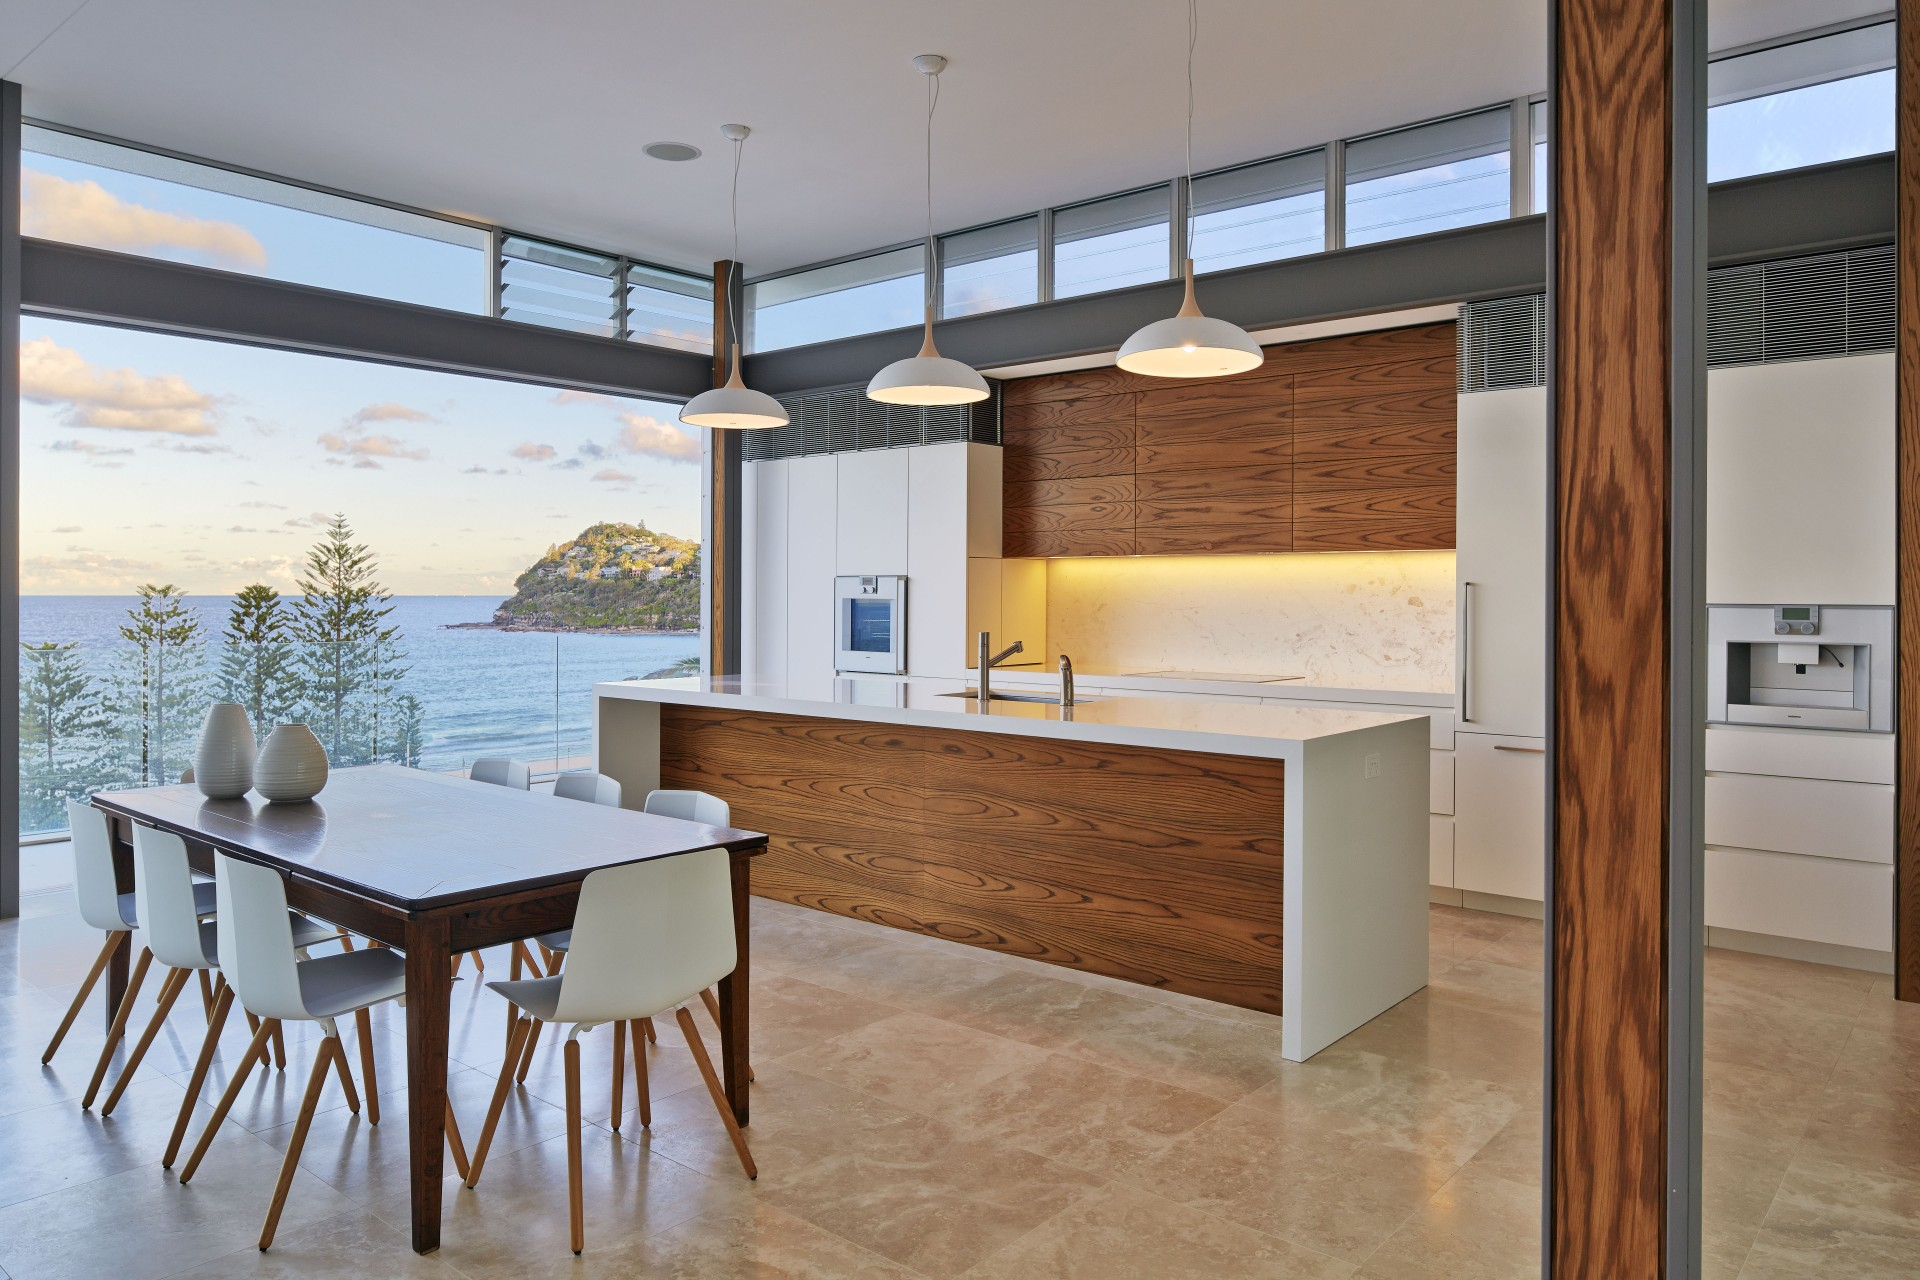 Beach Kitchen Utz Sanby Architects Whale Beach House